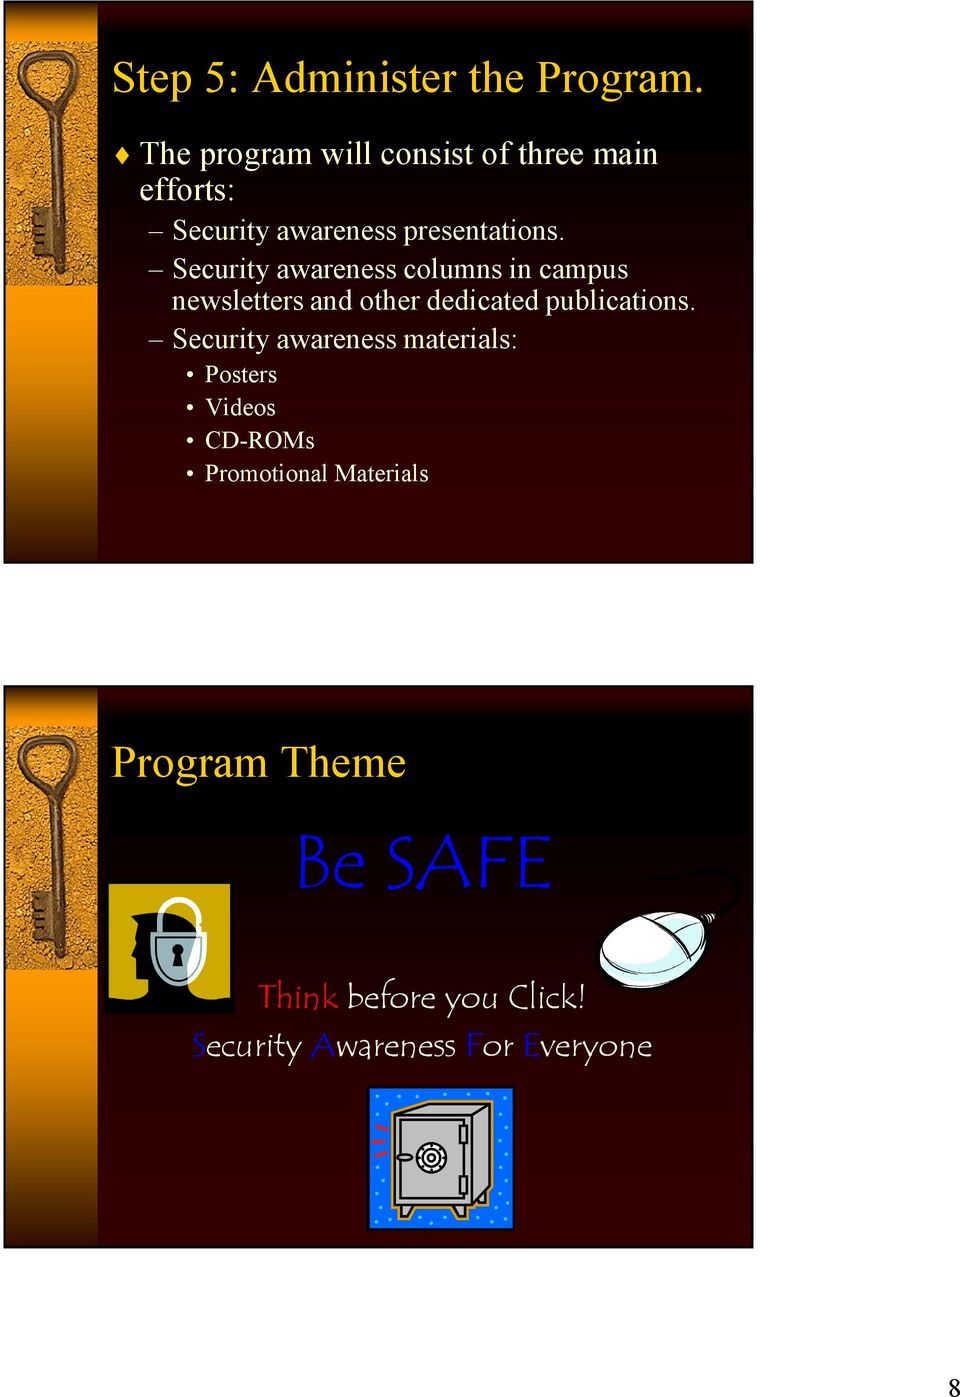 Security awareness columns in campus newsletters and other dedicated publications.